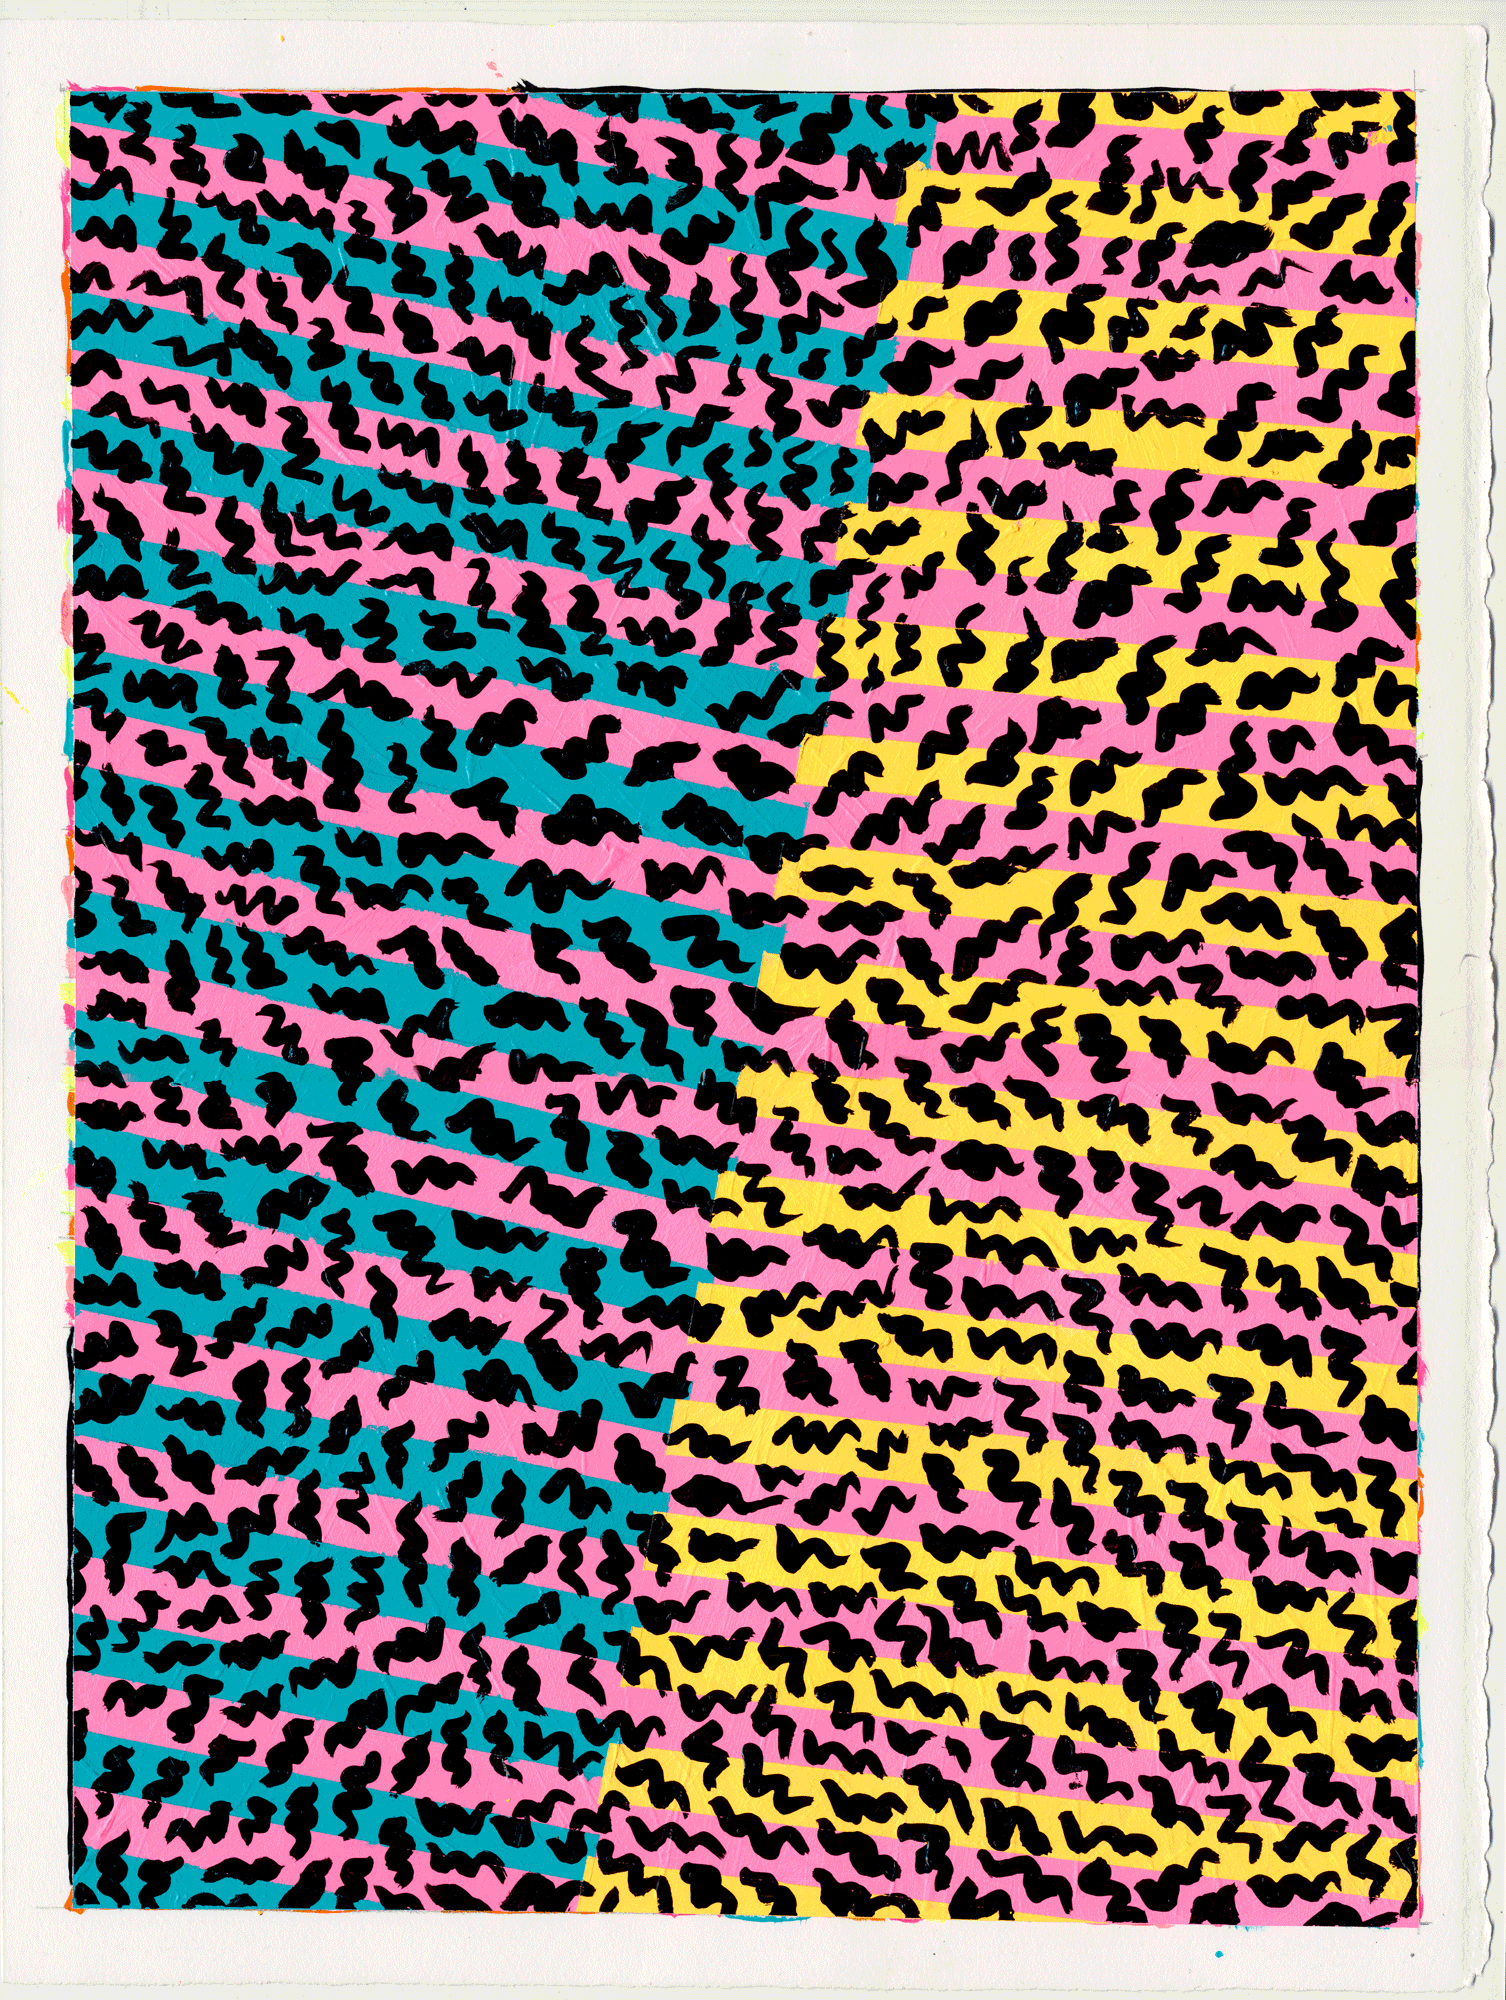 "NY1740 15"" X 11"", acrylic on paper, 2017  available at Etsy  Clothing at  Roxie Rudolf     this is one of several paintings that was inspired by the Ettore Sottsass show at the Met Breuer in 2017. fewer layers but with bolder patterns & colors. playing!"